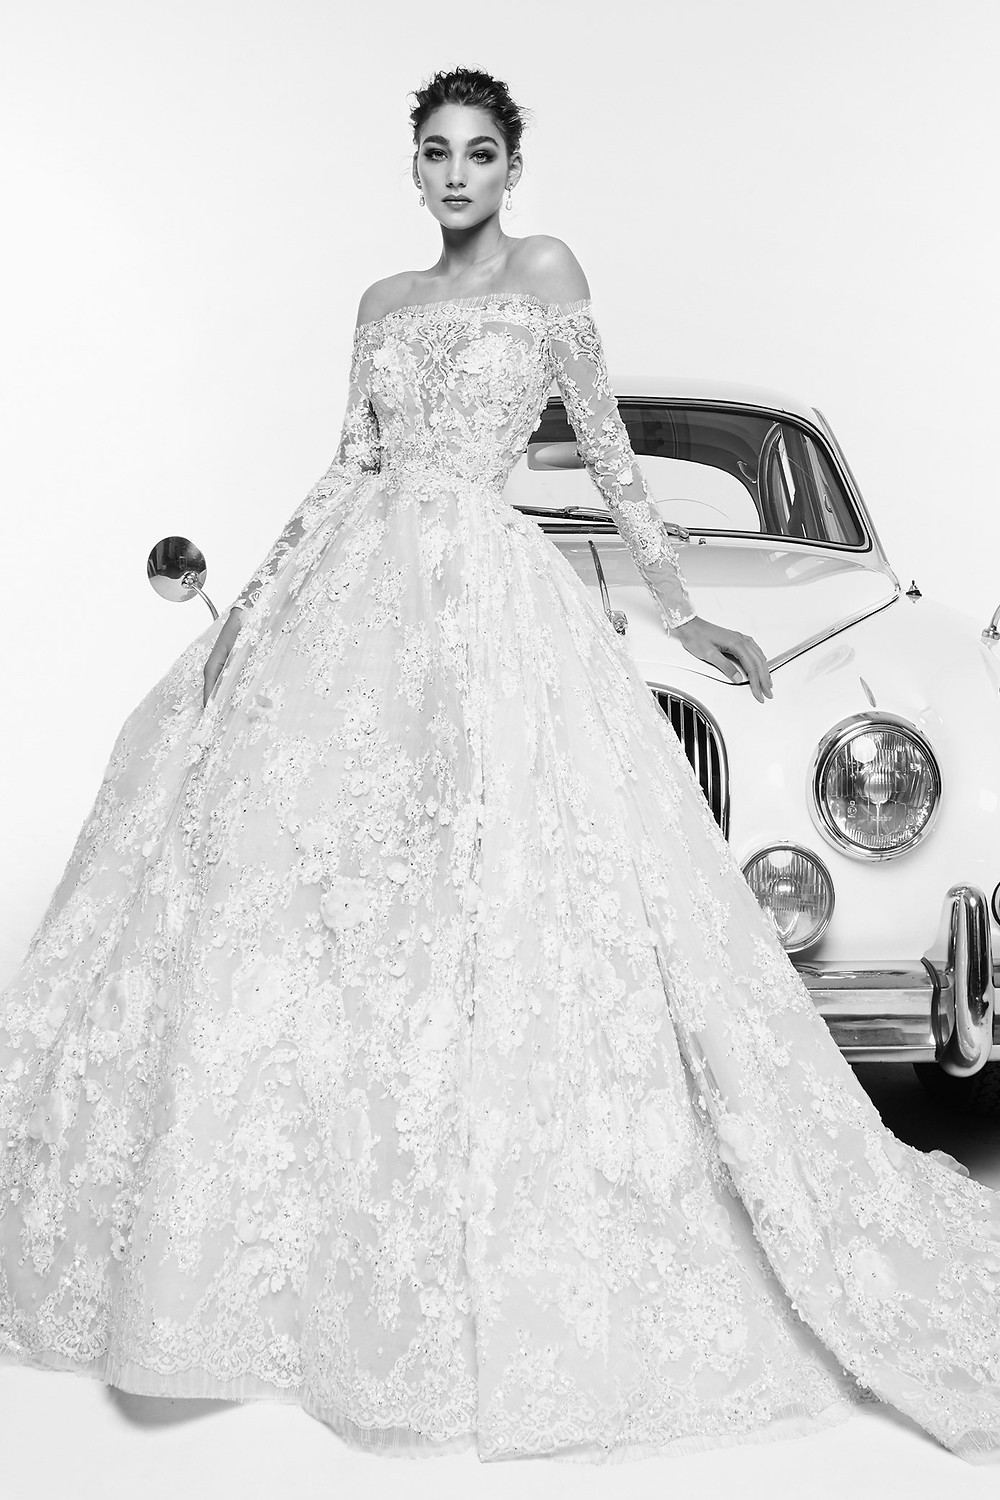 An off the shoulder, lace ball gown wedding dress, with long sleeves